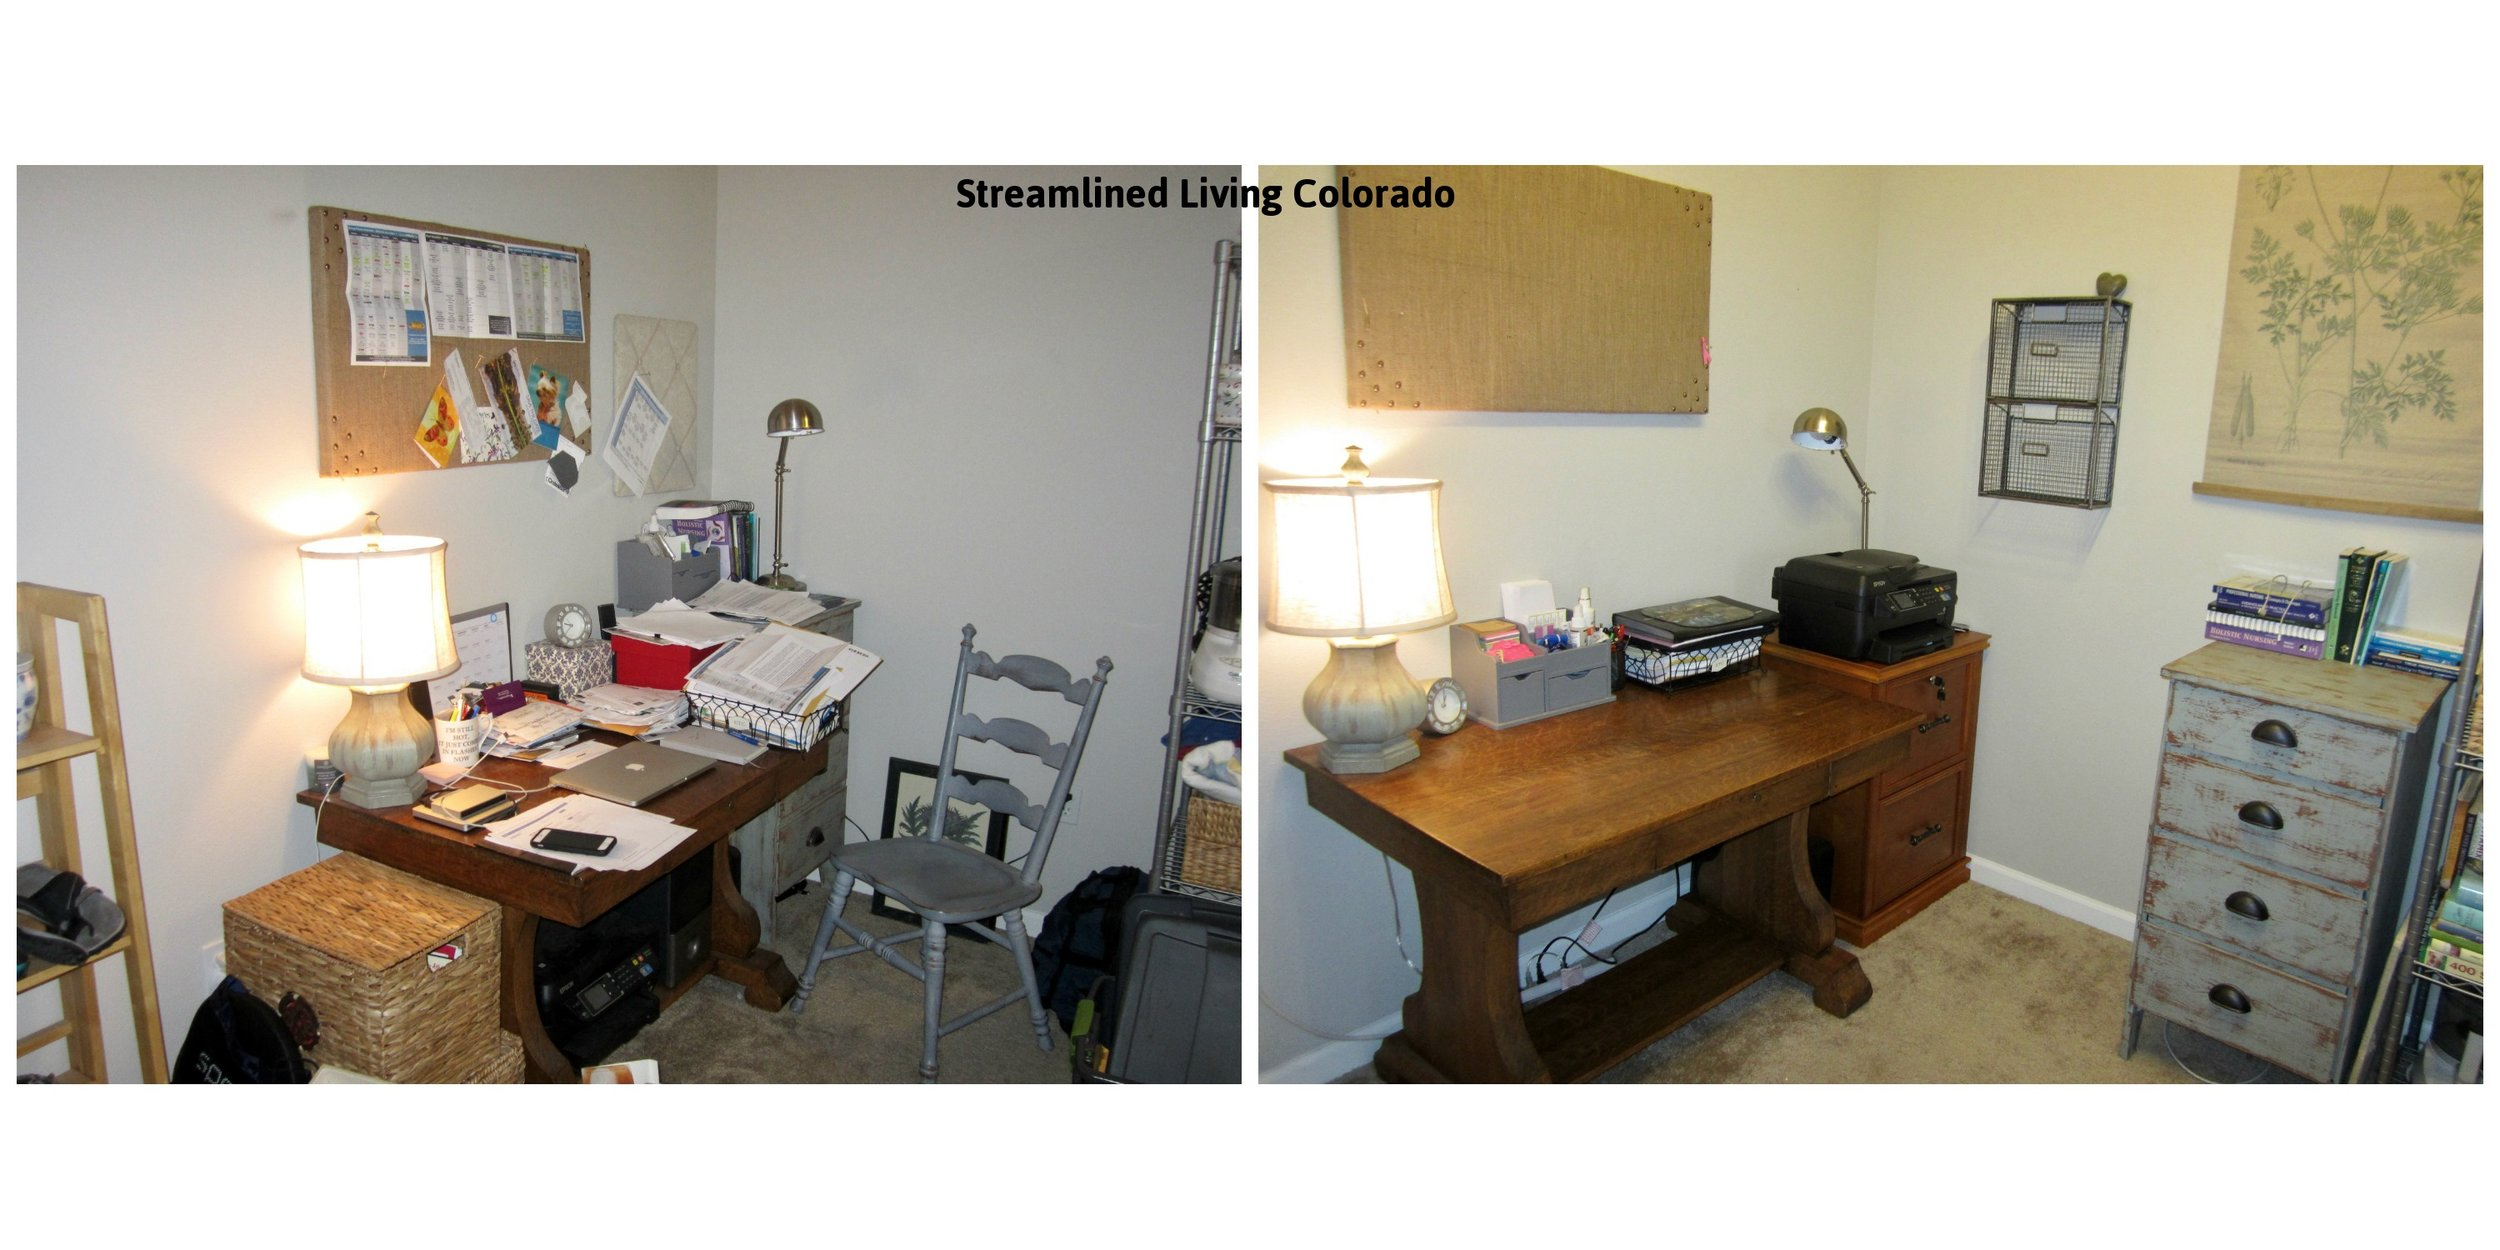 Desk signed small spaces organized professional organizer reorganized home office Streamlined Living Colorado.jpg